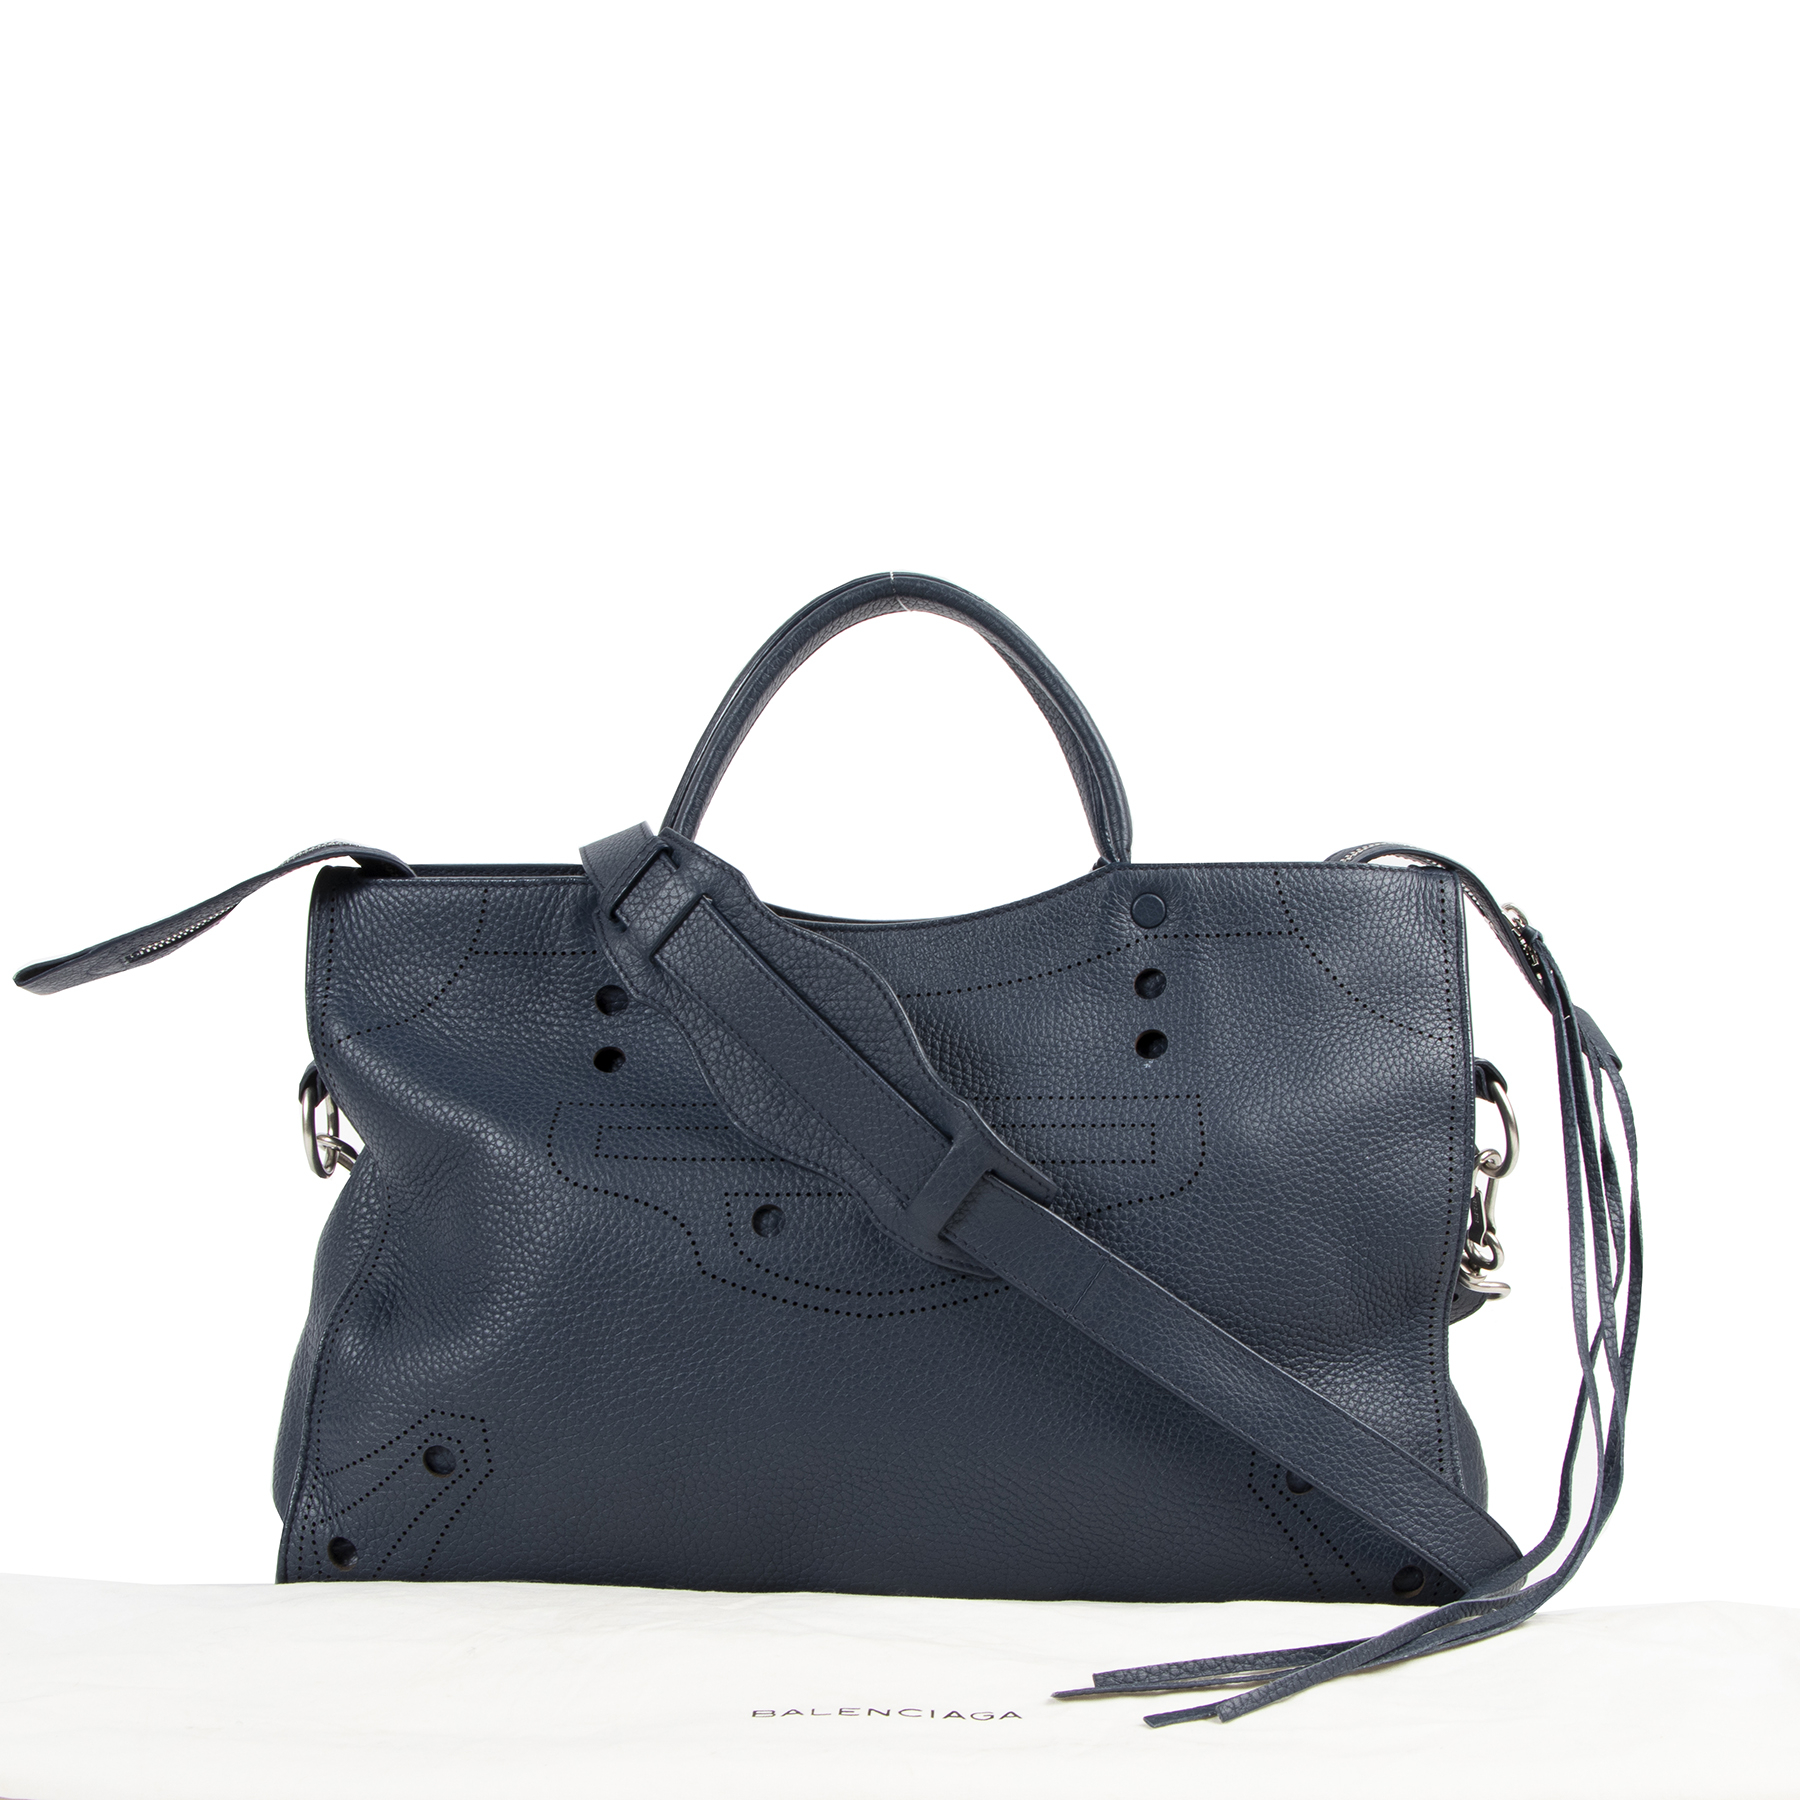 Are you looking for an authentic Balenciaga Blue Leather Blackout City Bag